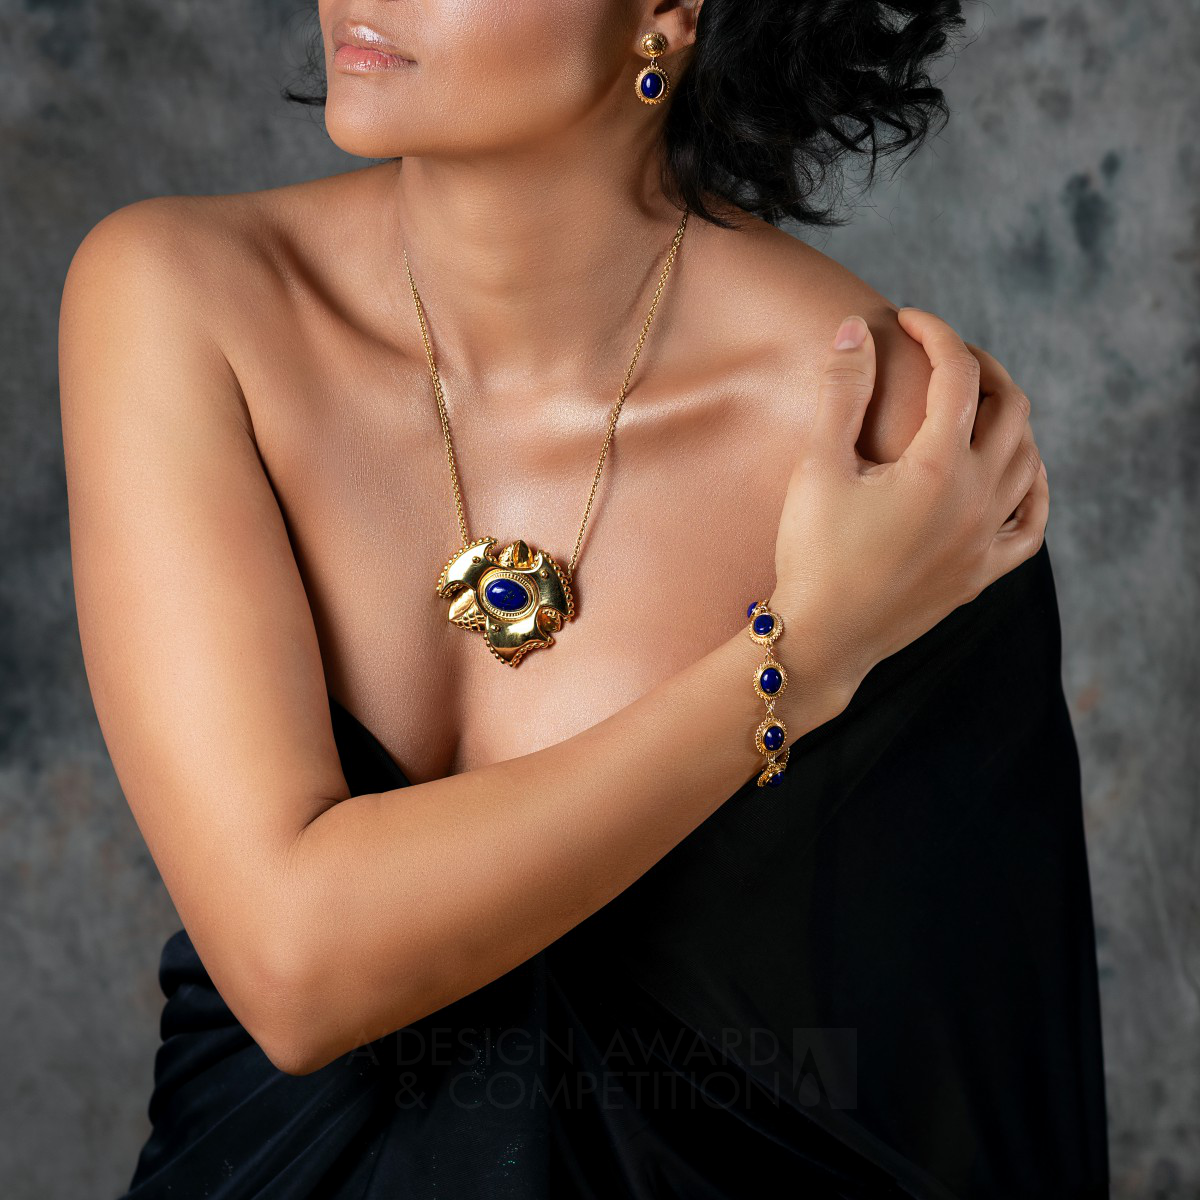 Merging Galaxies Jewelry Collection